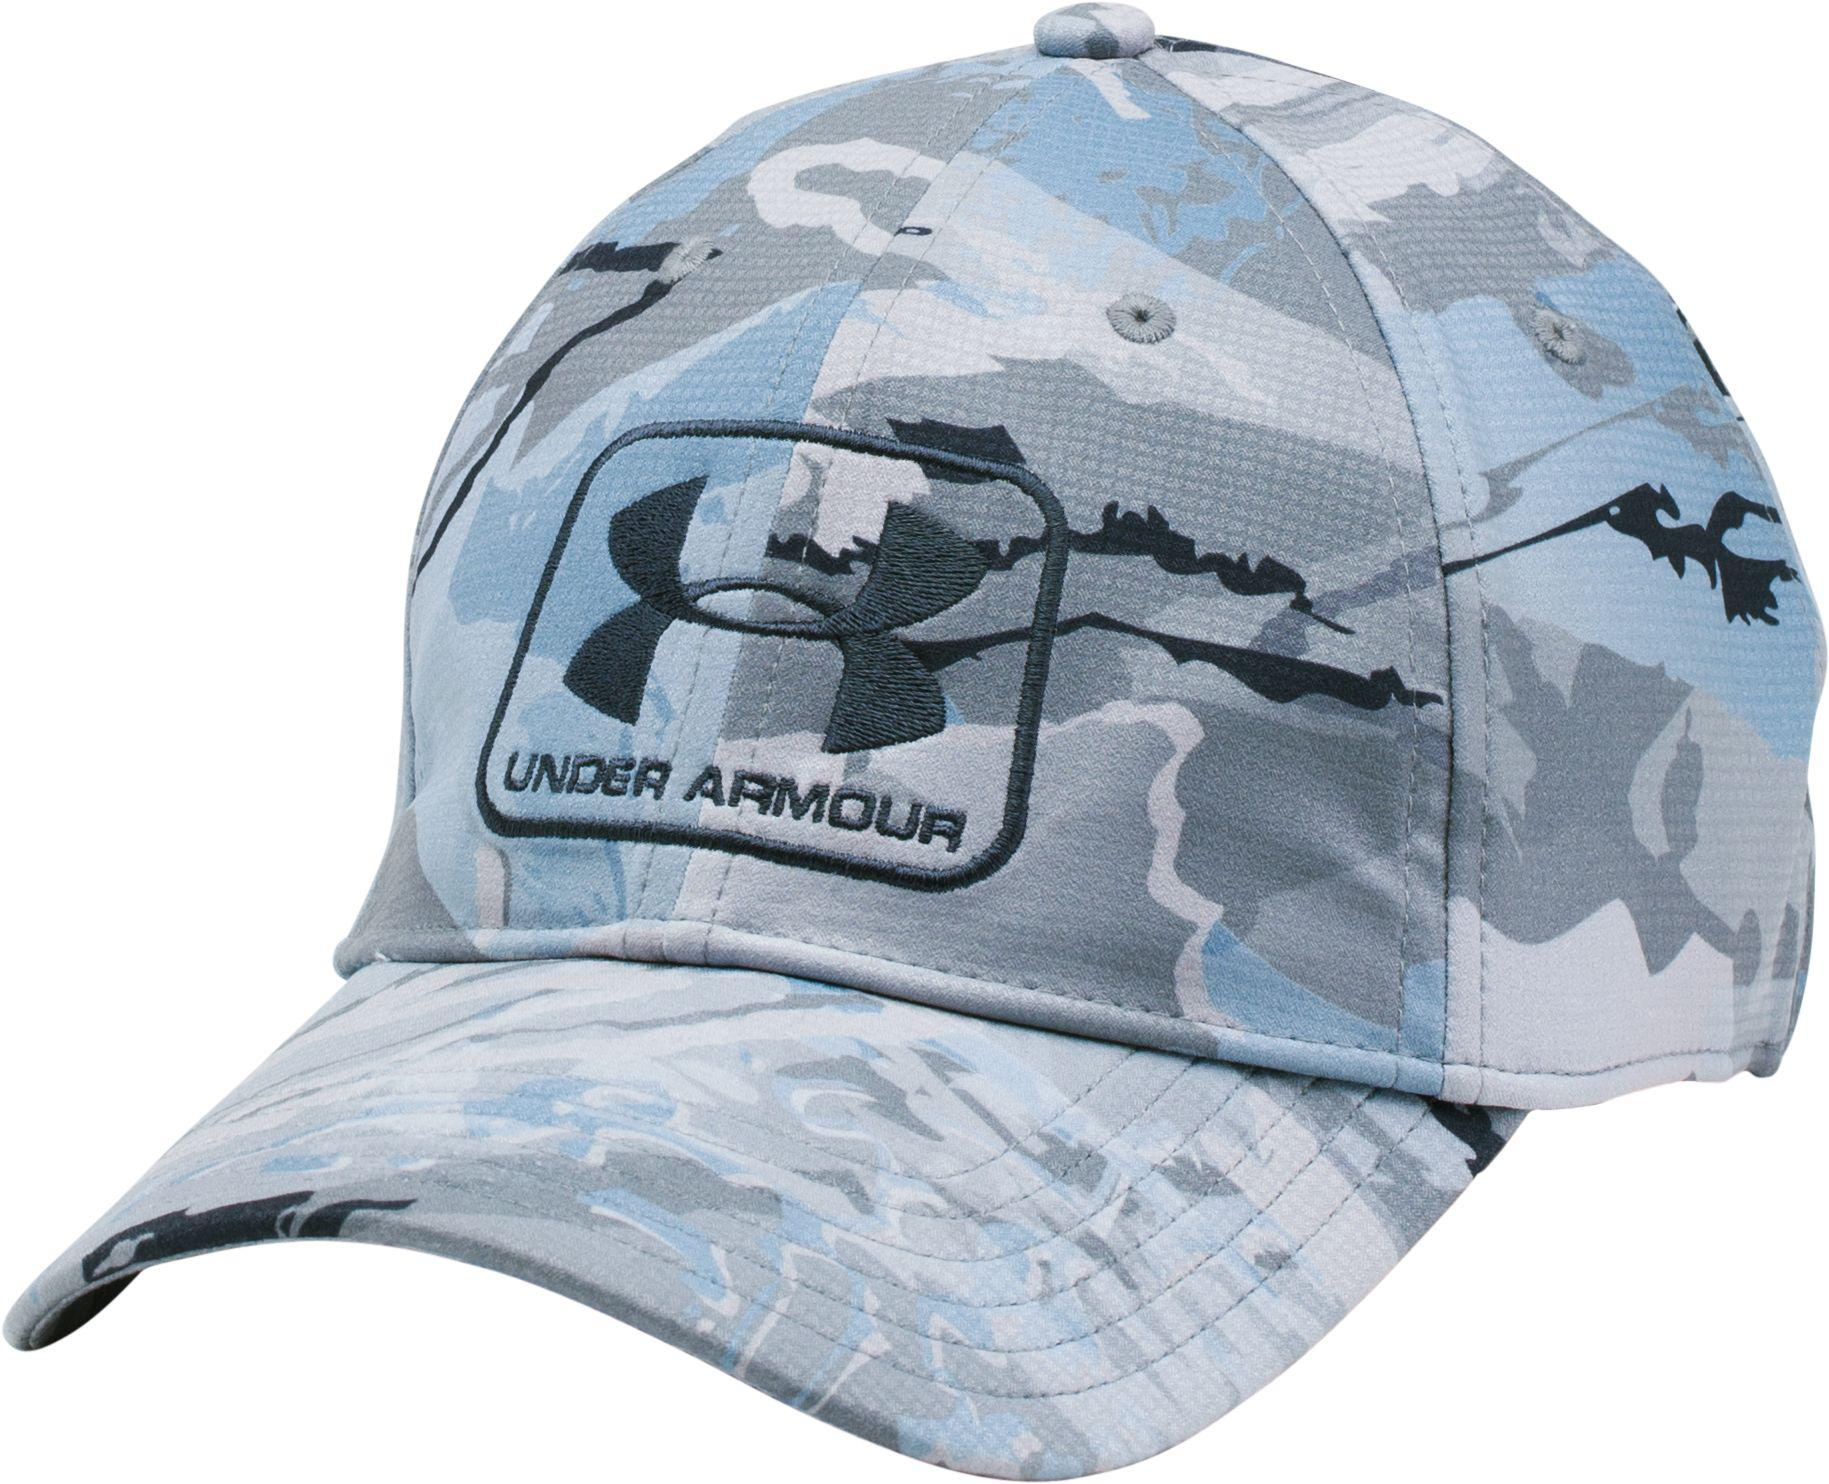 Lyst - Under Armour Camo Stretch Fit Hat in Blue for Men 27c8bb39eb2